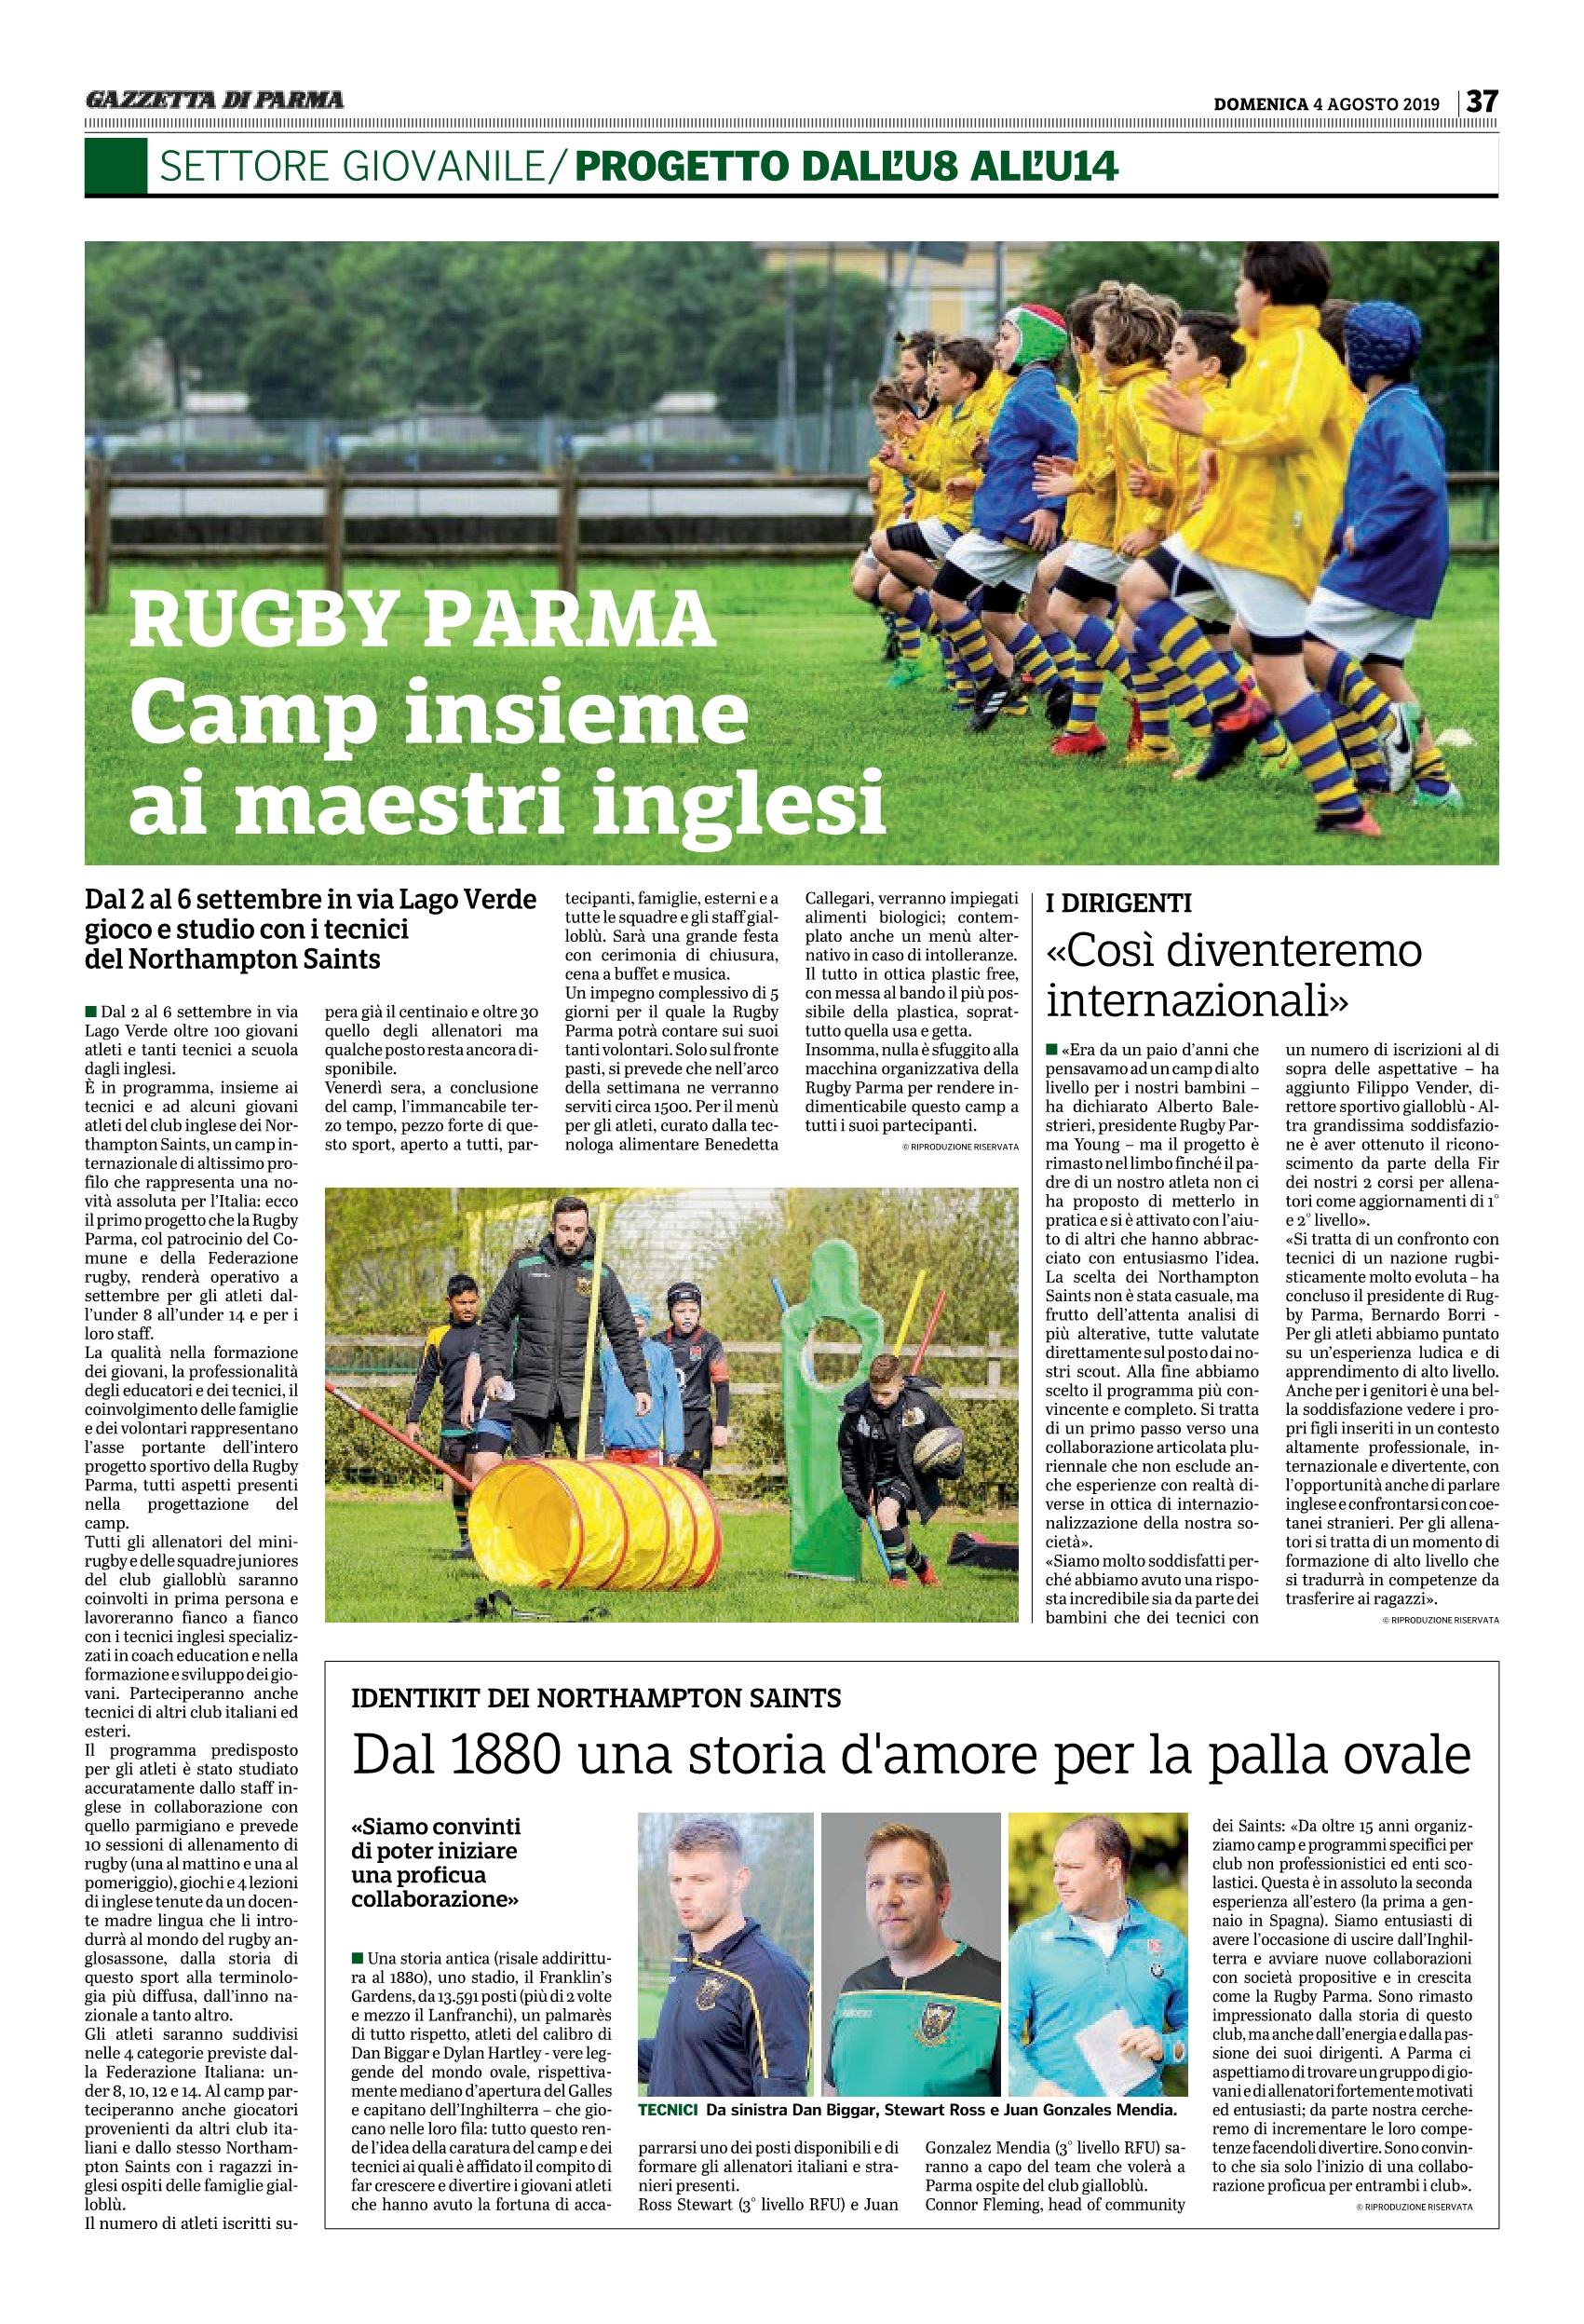 International Rugby Camp I Northampton Saints Al Lavoro Con